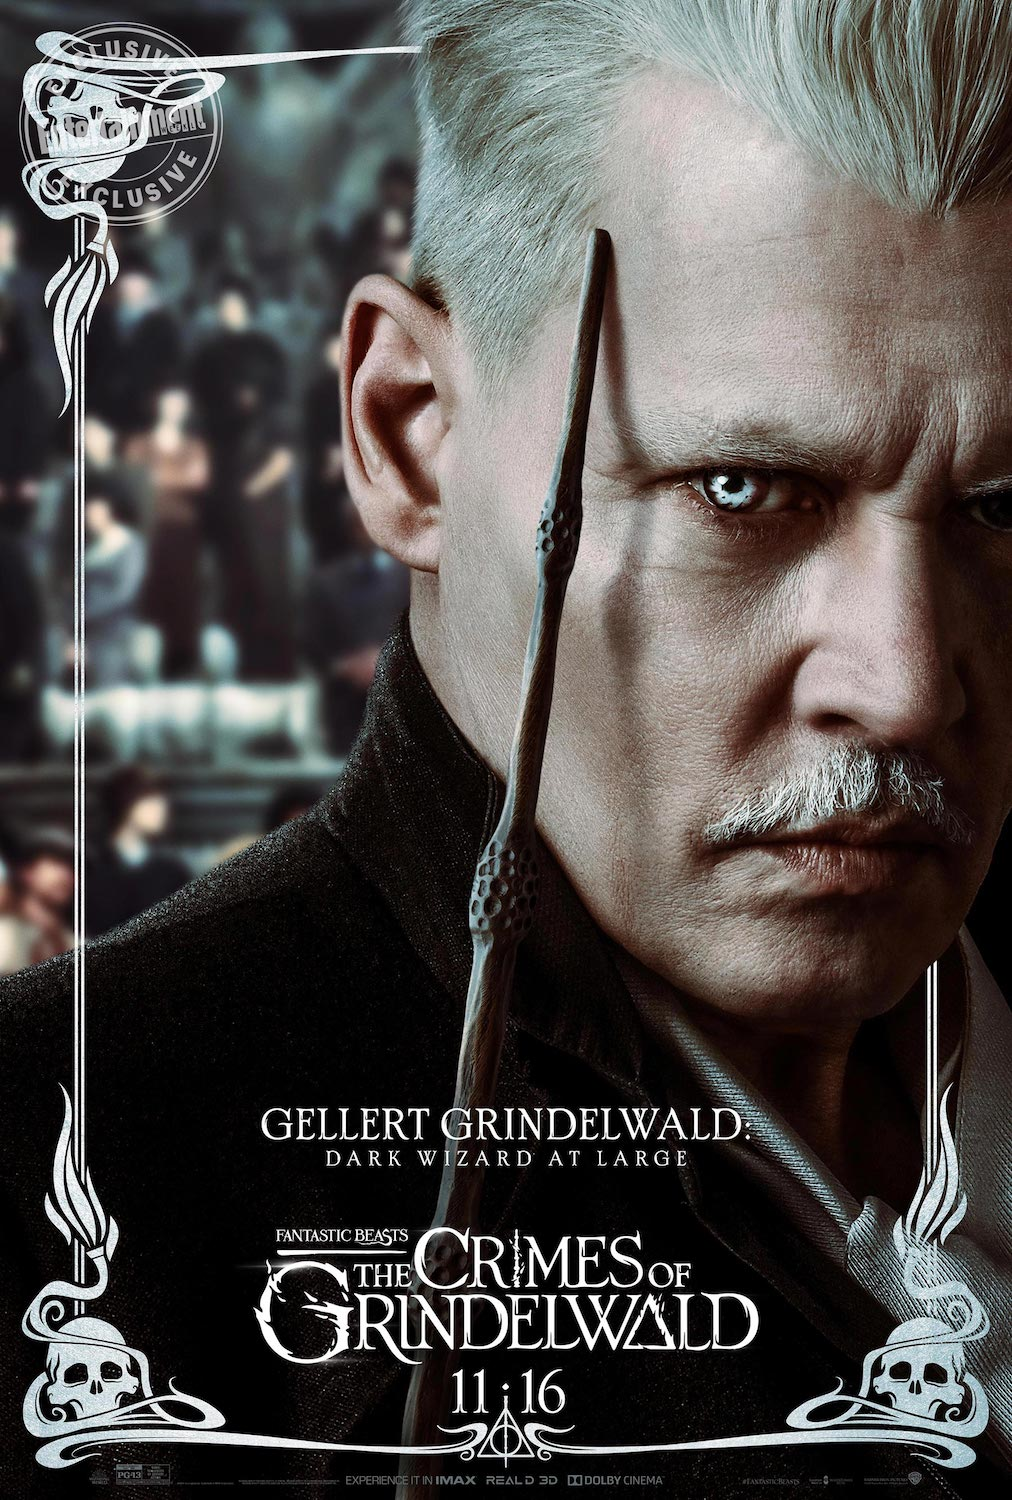 The movie is named after him, but what is Grindelwald up to in this installment of the franchise?